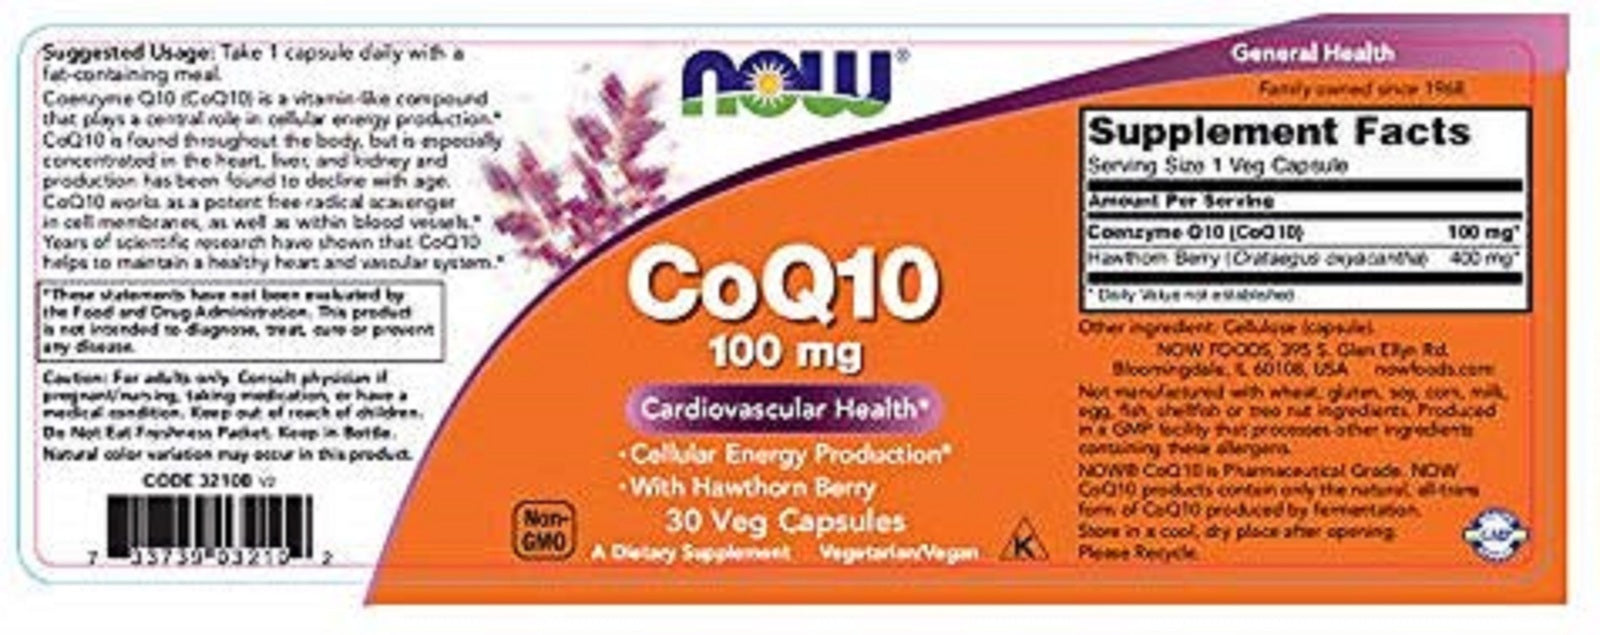 Now Supplements, CoQ10 100 mg with Hawthorn Berry, Pharmaceutical Grade, All